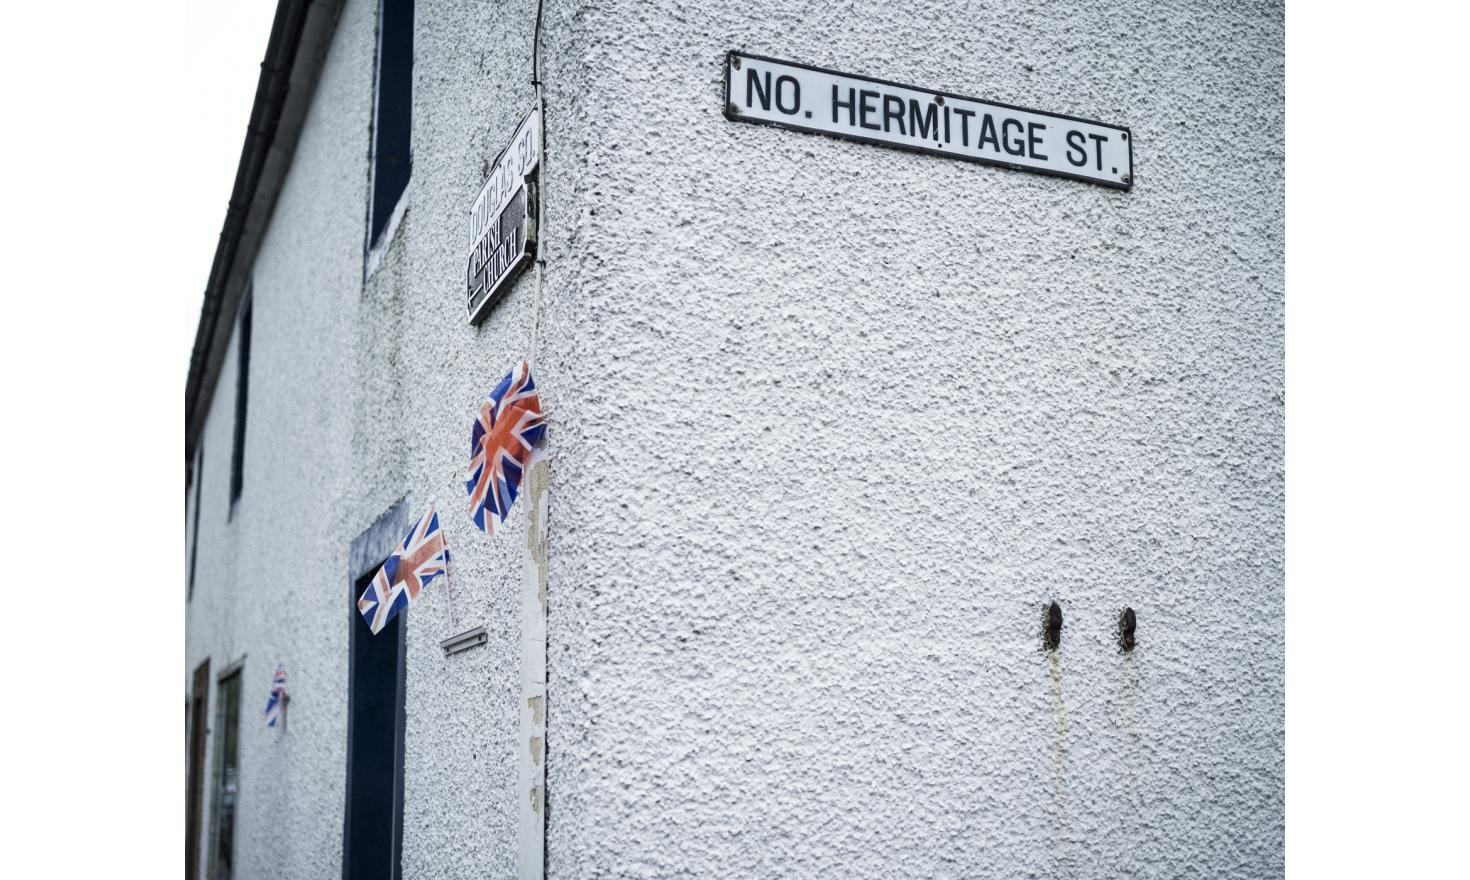 In the town of Castelton, in the Scottish Borders region of Scotland. The region voted 58,5% for remaining in the EU during the British EU Referendum.